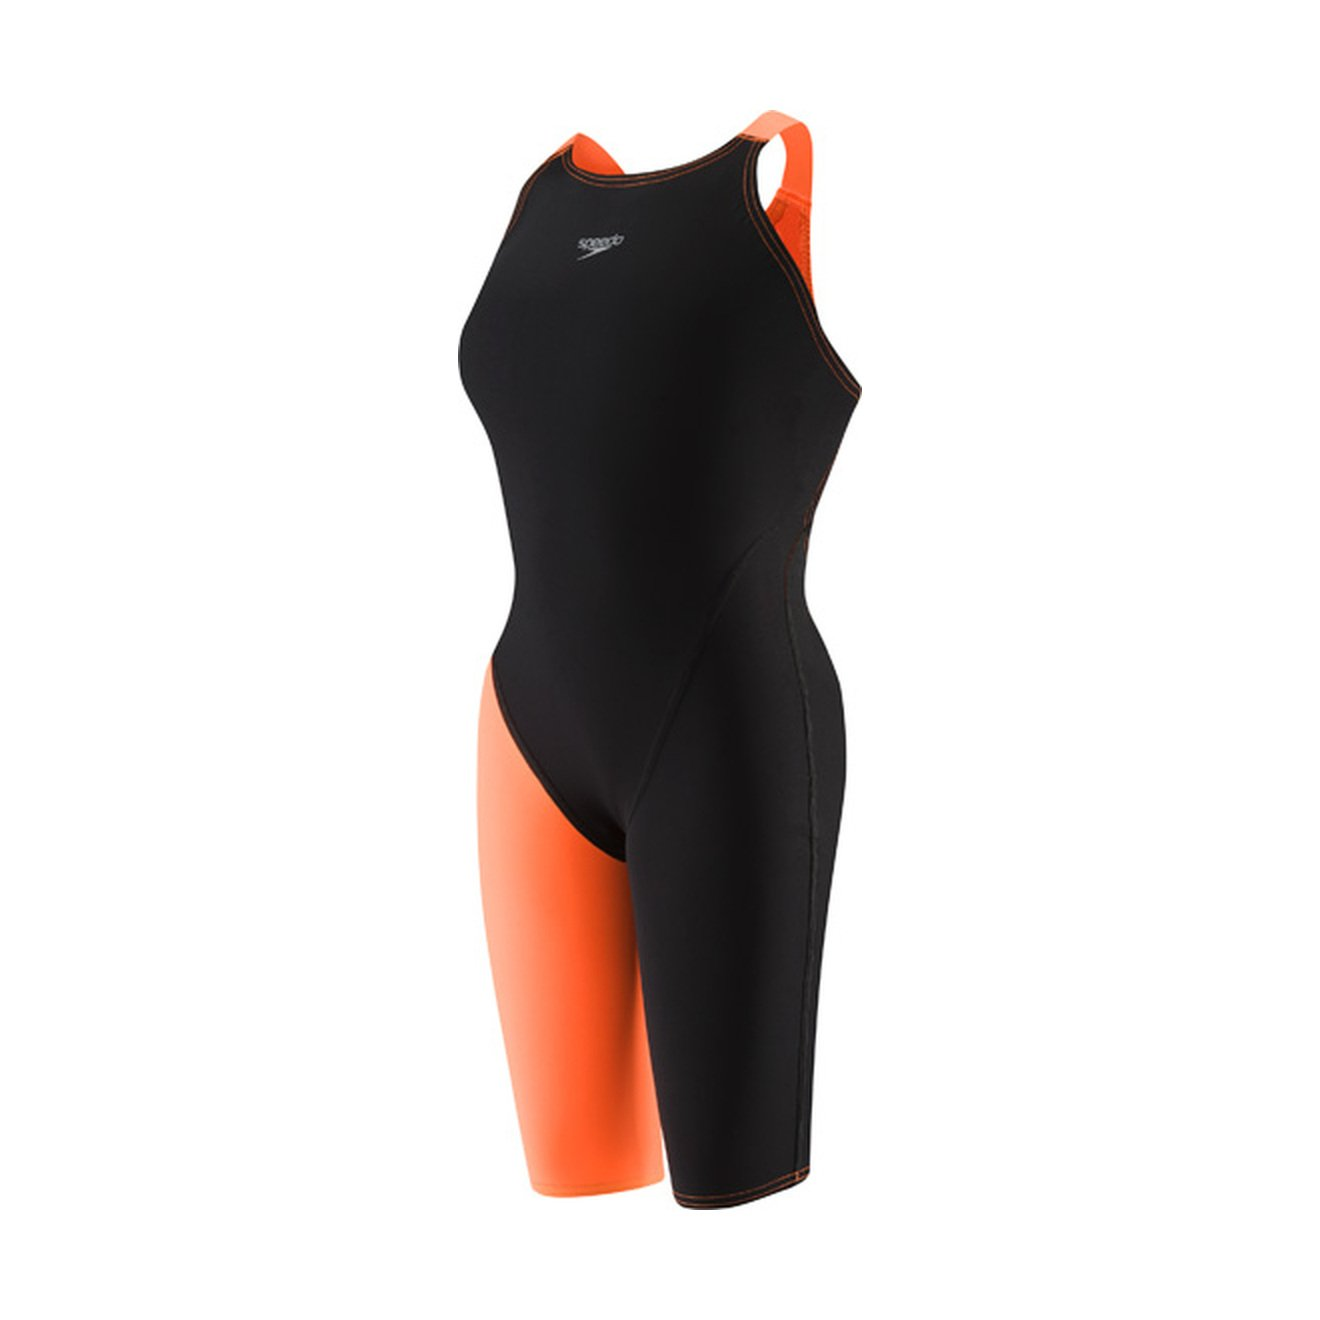 Speedo LZR Racer Pro Recordbreaker Kneeskin with Comfort Strap Female Black/Orange 18